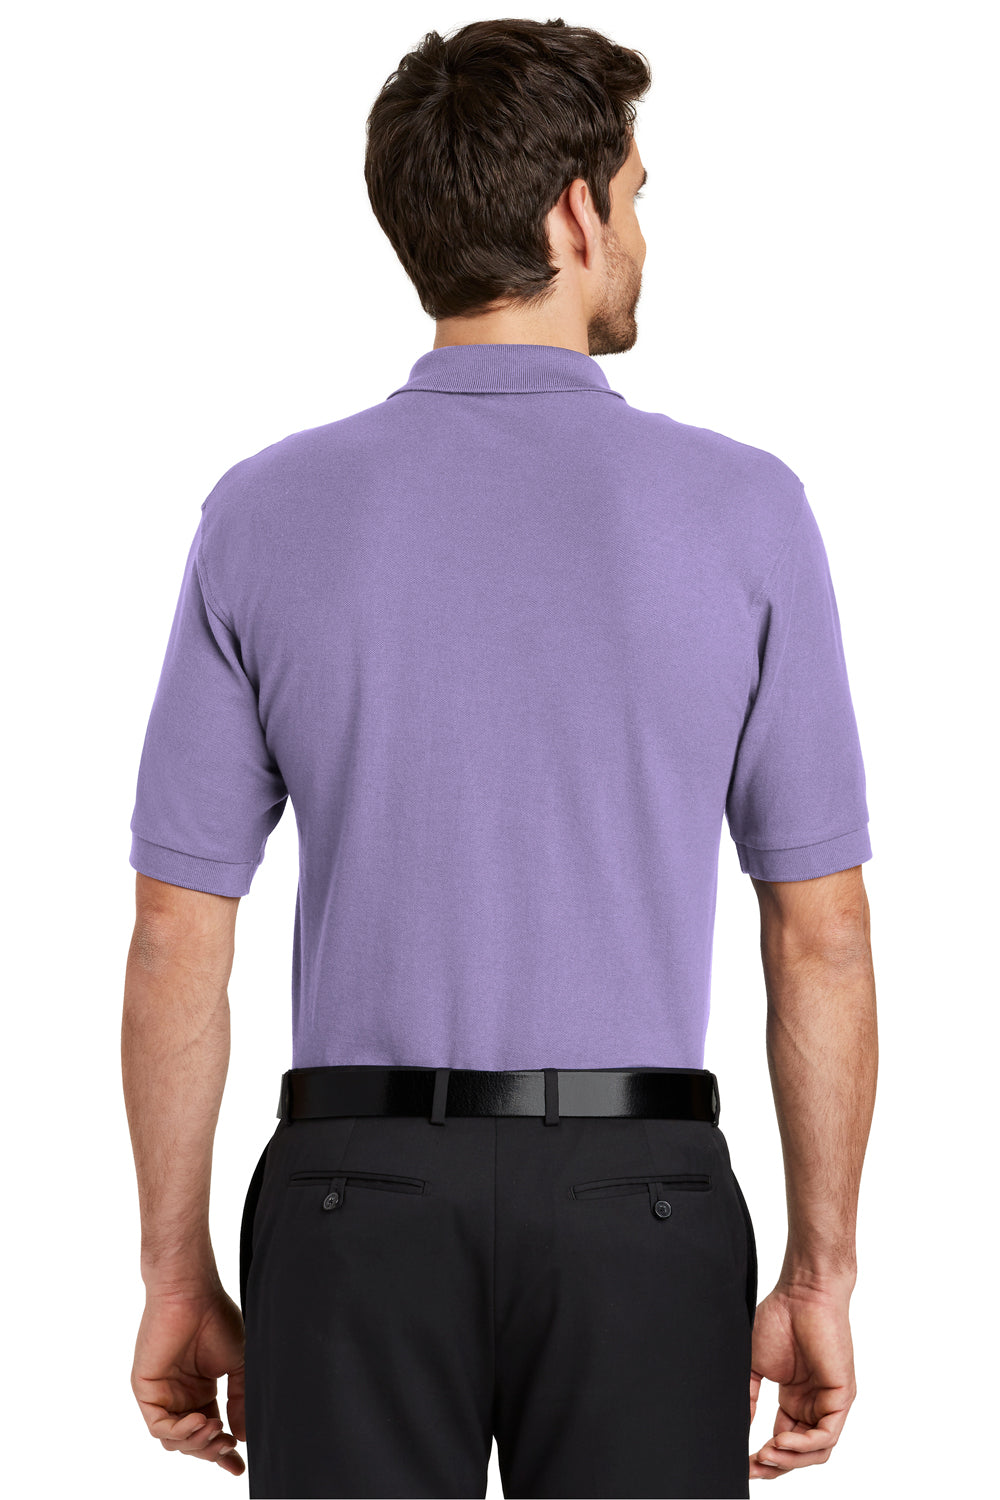 Port Authority K500 Mens Silk Touch Wrinkle Resistant Short Sleeve Polo Shirt Lavender Purple Back